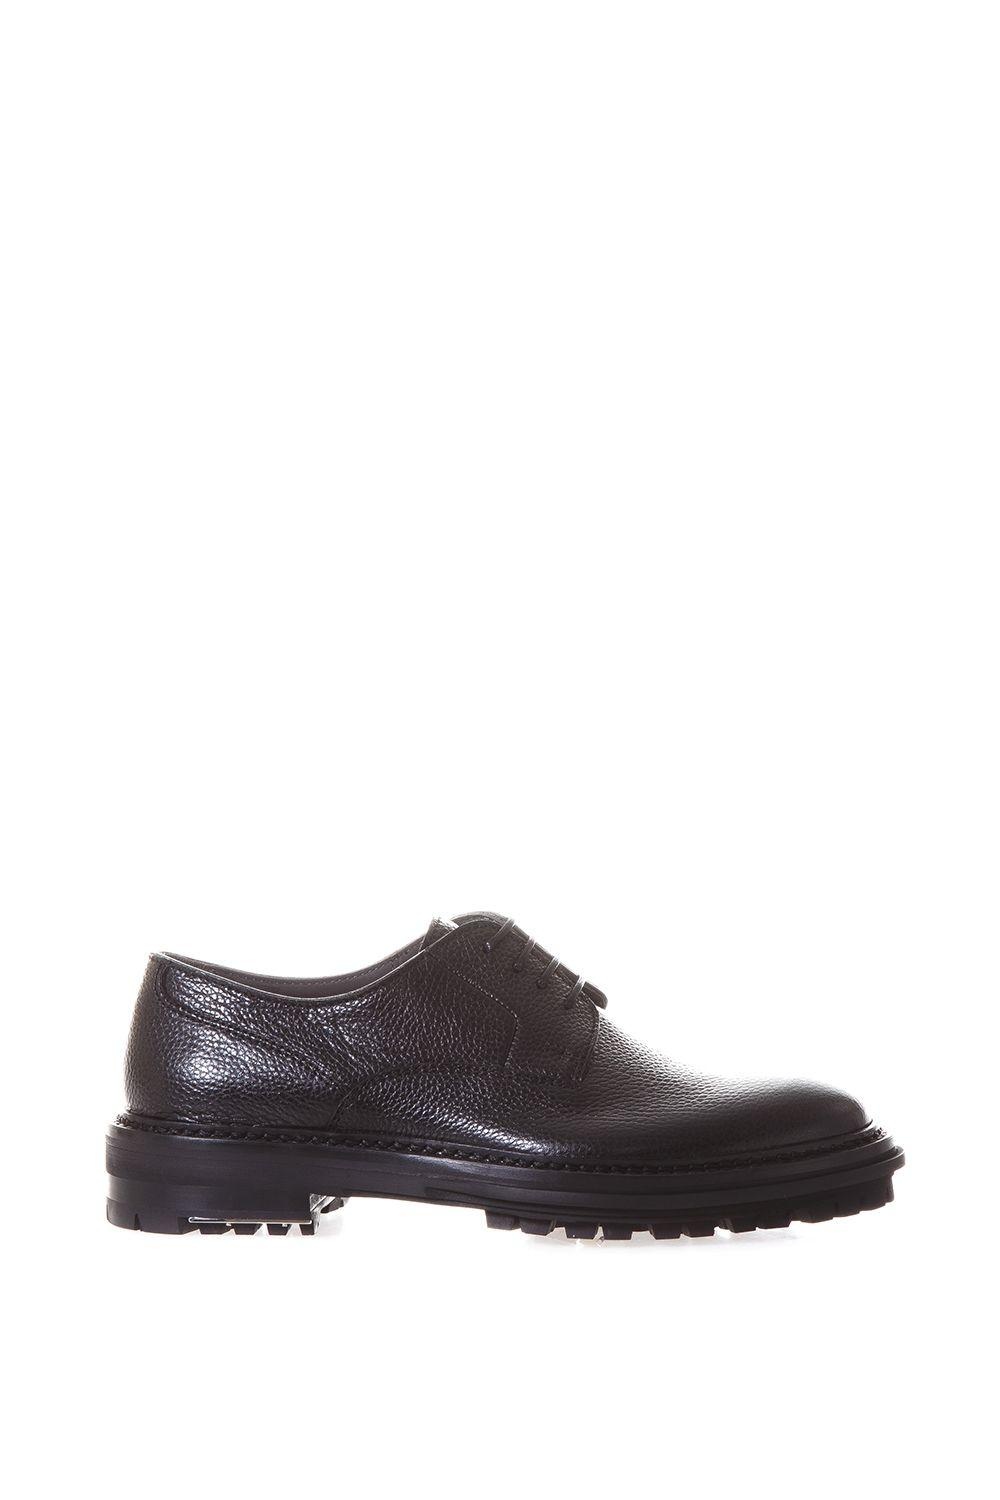 Lanvin Grained Leather Derby Shoes In Black